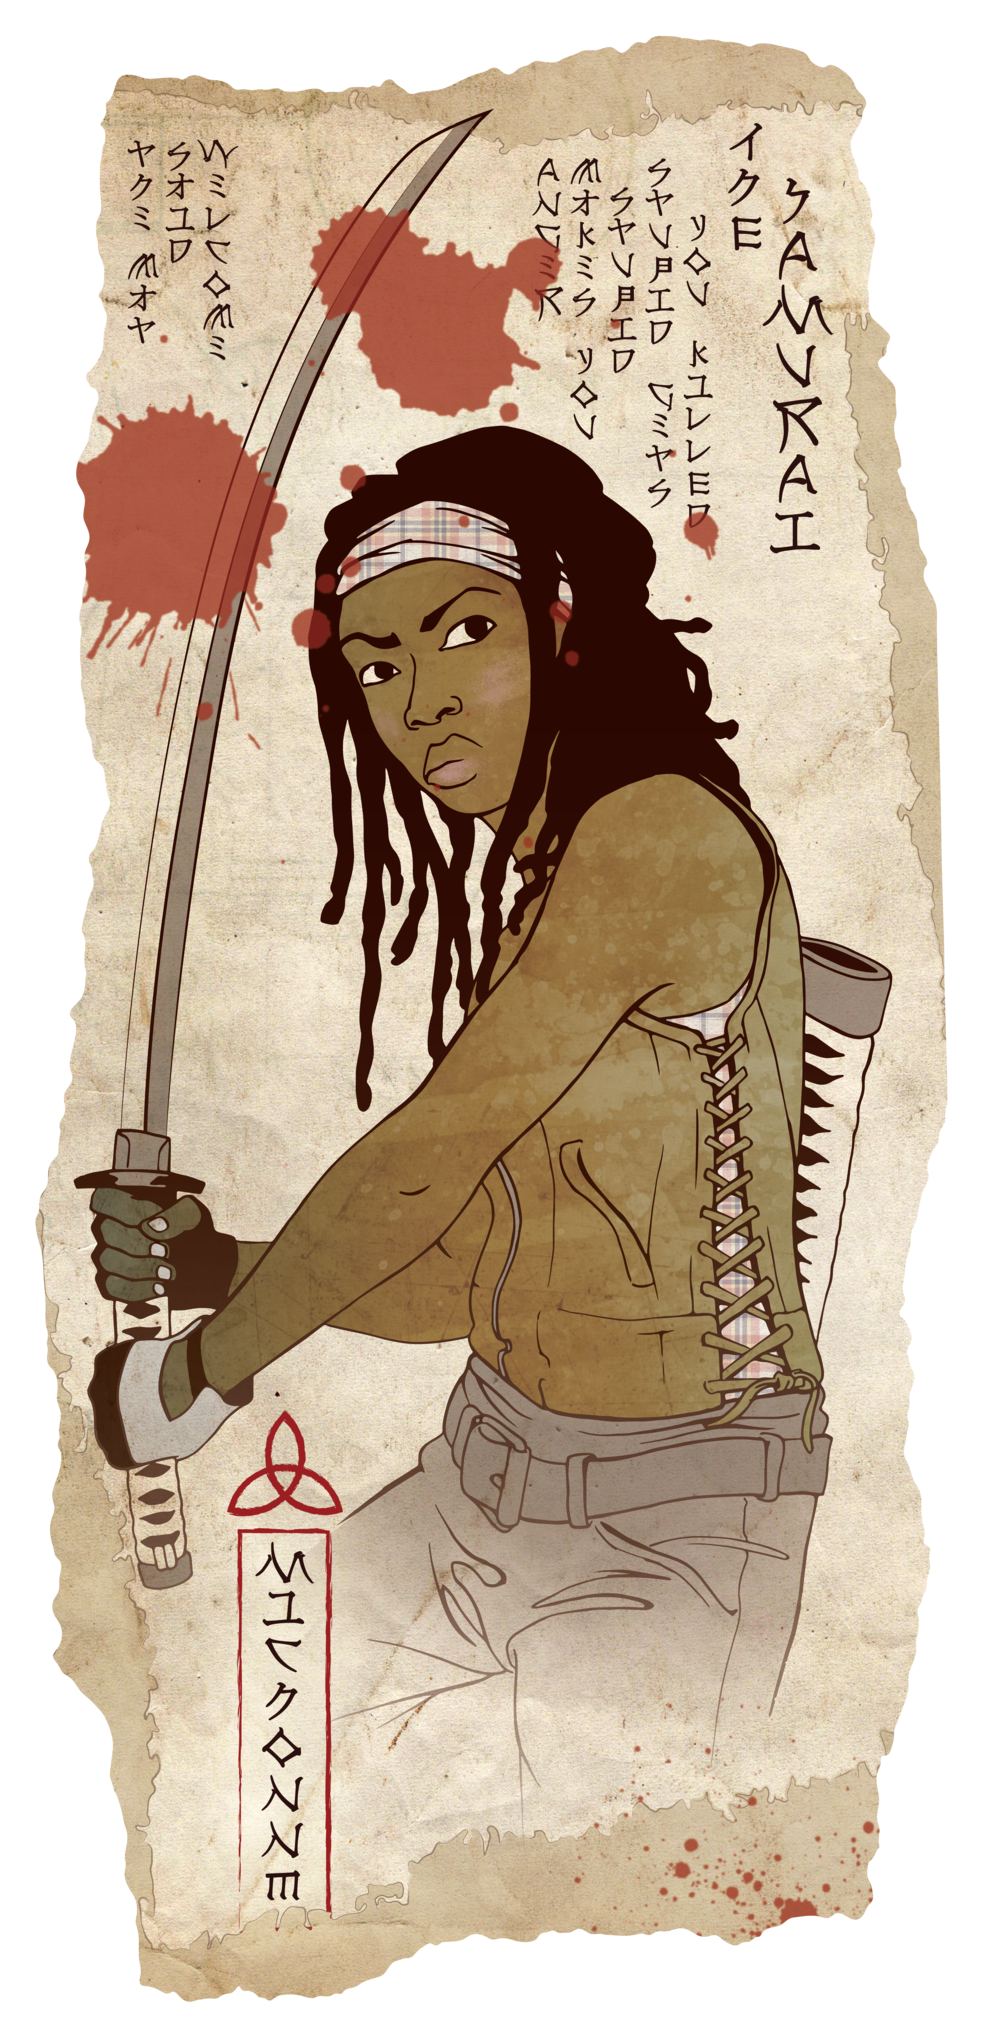 michonne_blood_10-31-14.png